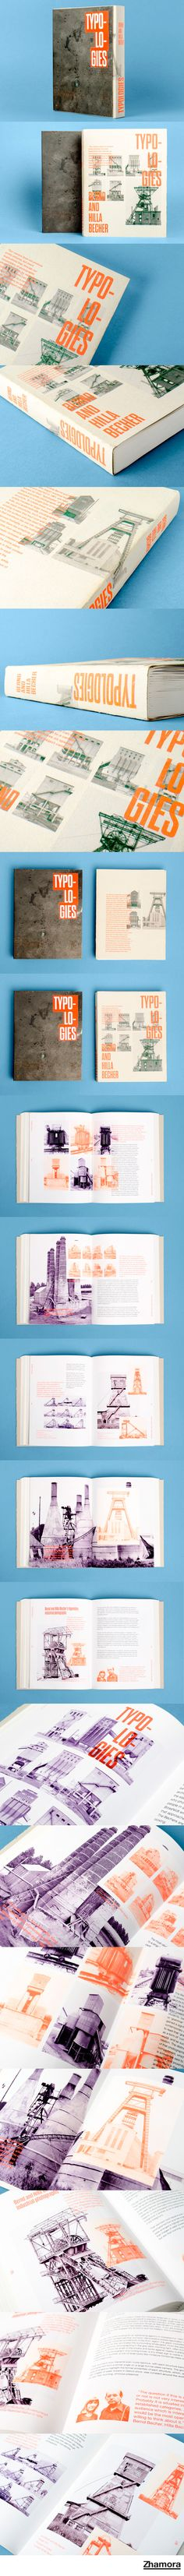 Typologies - Bernd and Hilla Becher - Zhamora #layout #editorialdesign #printdesign #diseño #graphicdesign #editorial #zhamora